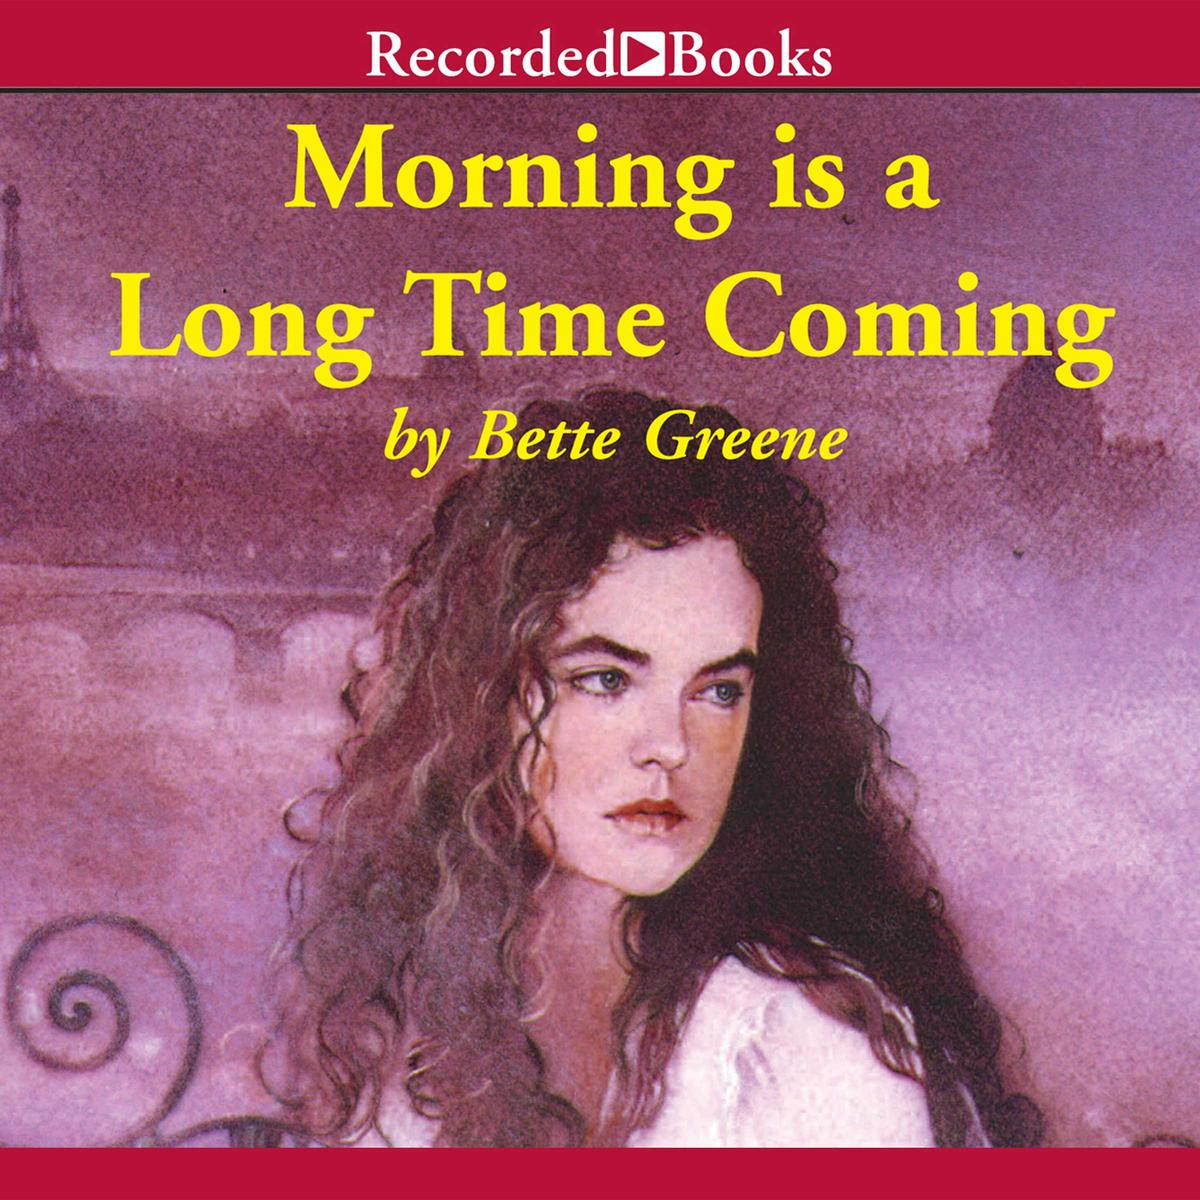 Morning is a Long Time Coming - Audiobook